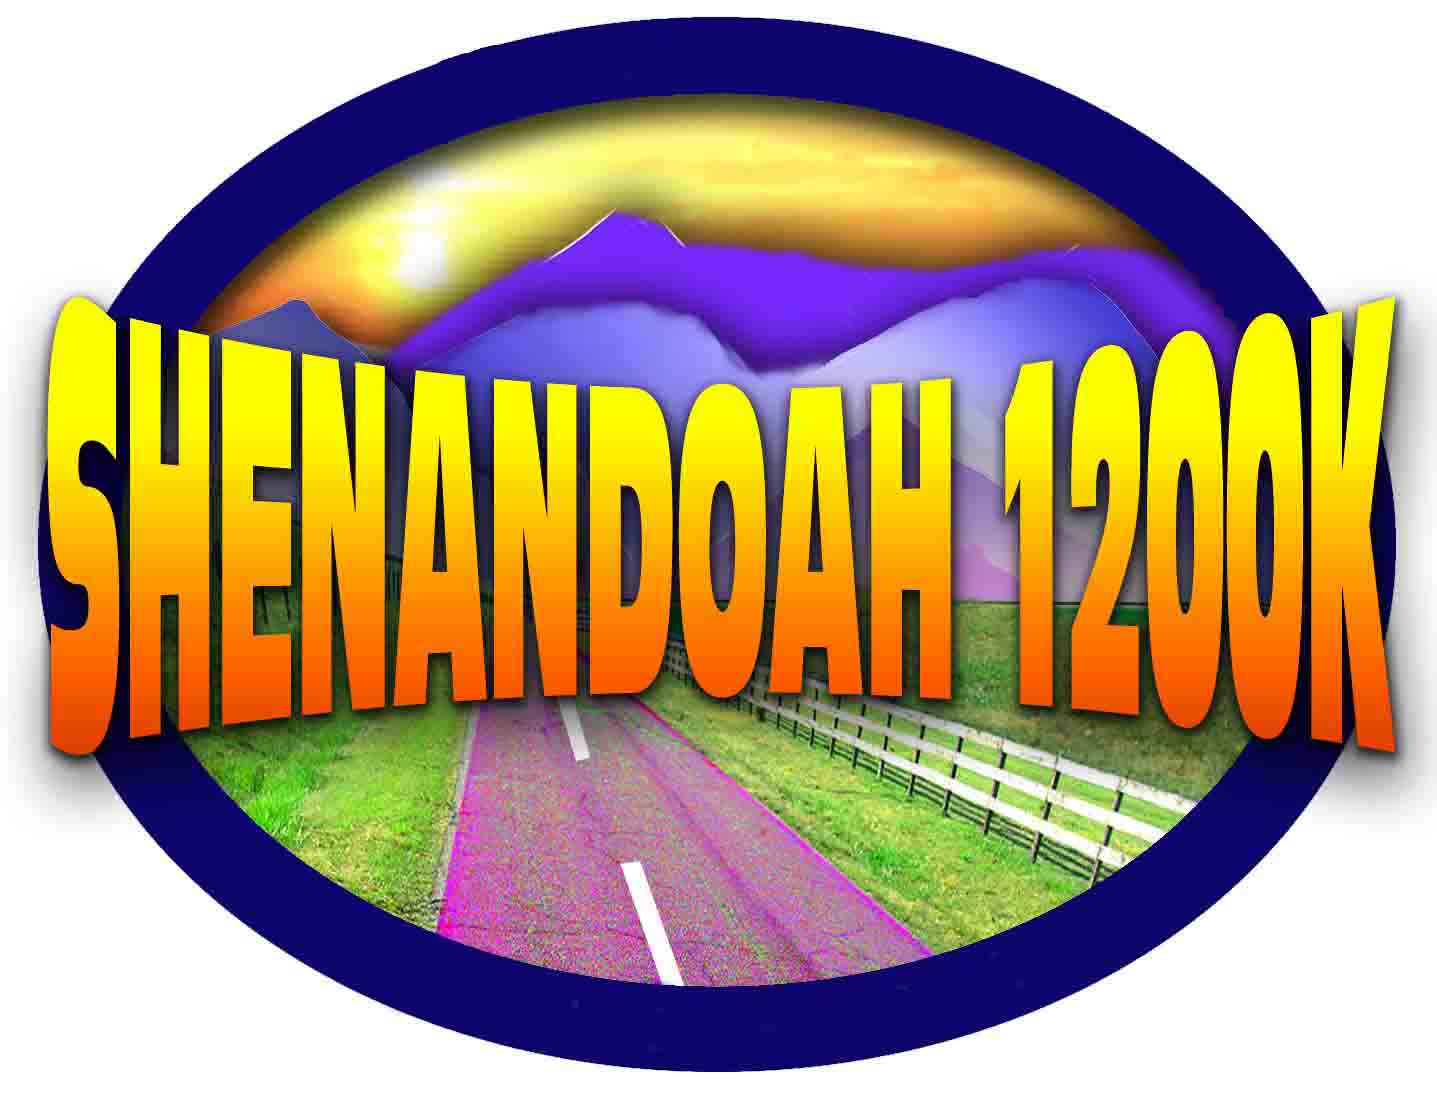 Visit the Shenandoah 1200 Website